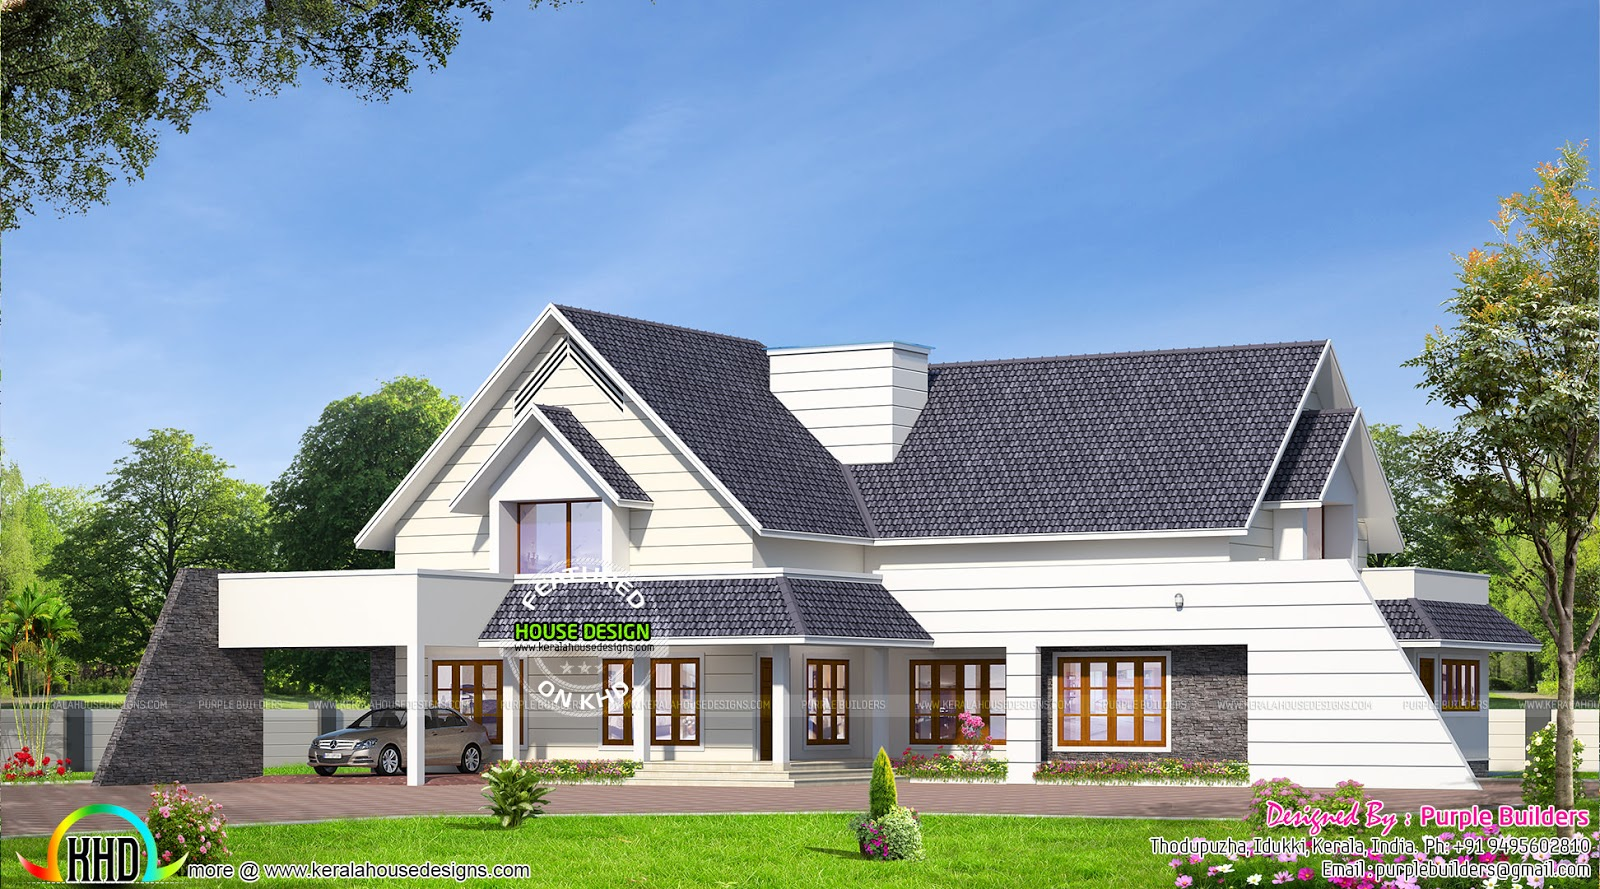 Bungalow house design kerala home design and floor plans for Kerala home design ground floor